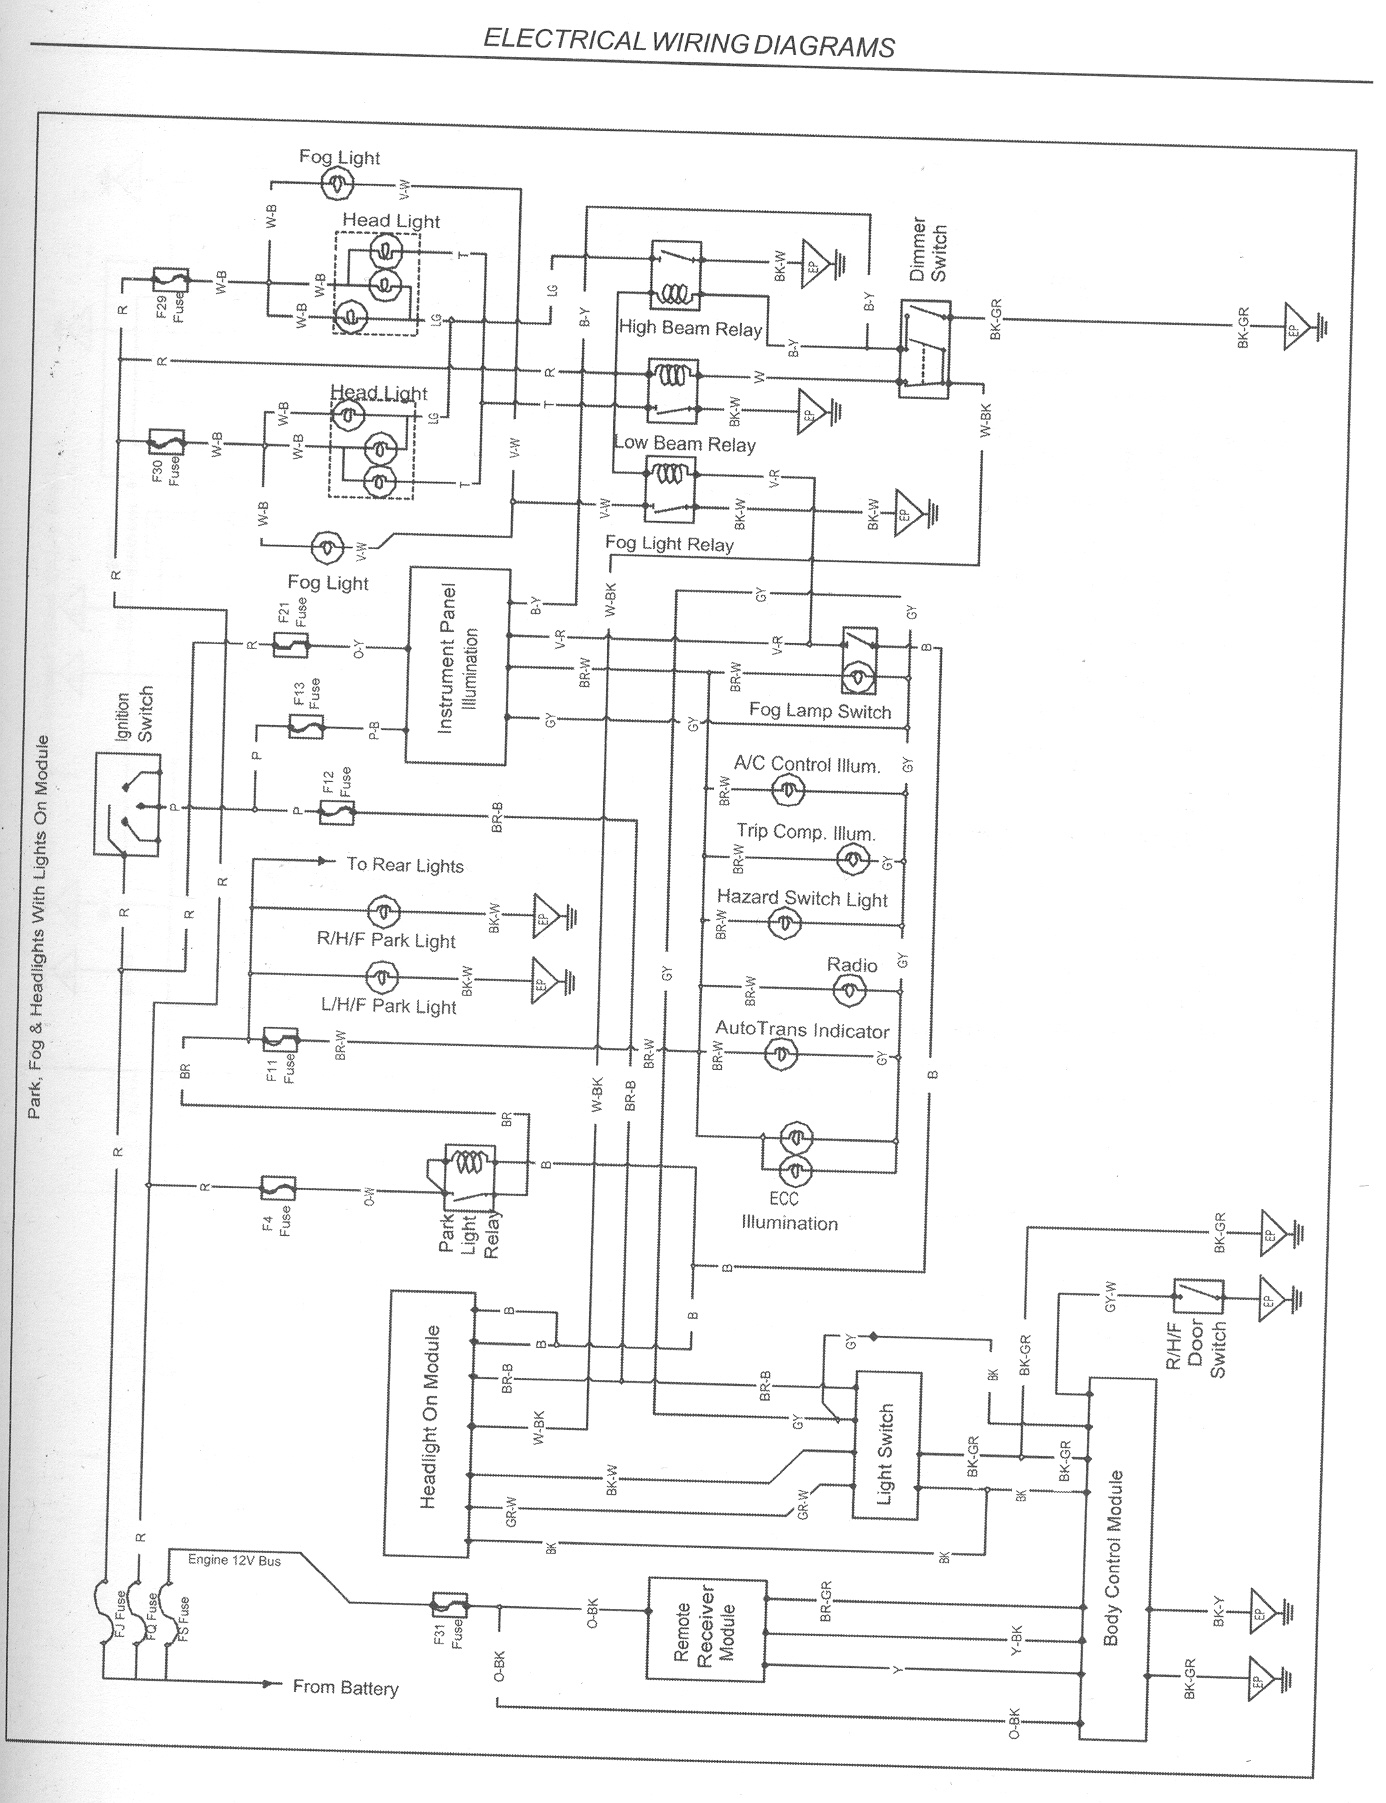 vs ute power window wiring diagram